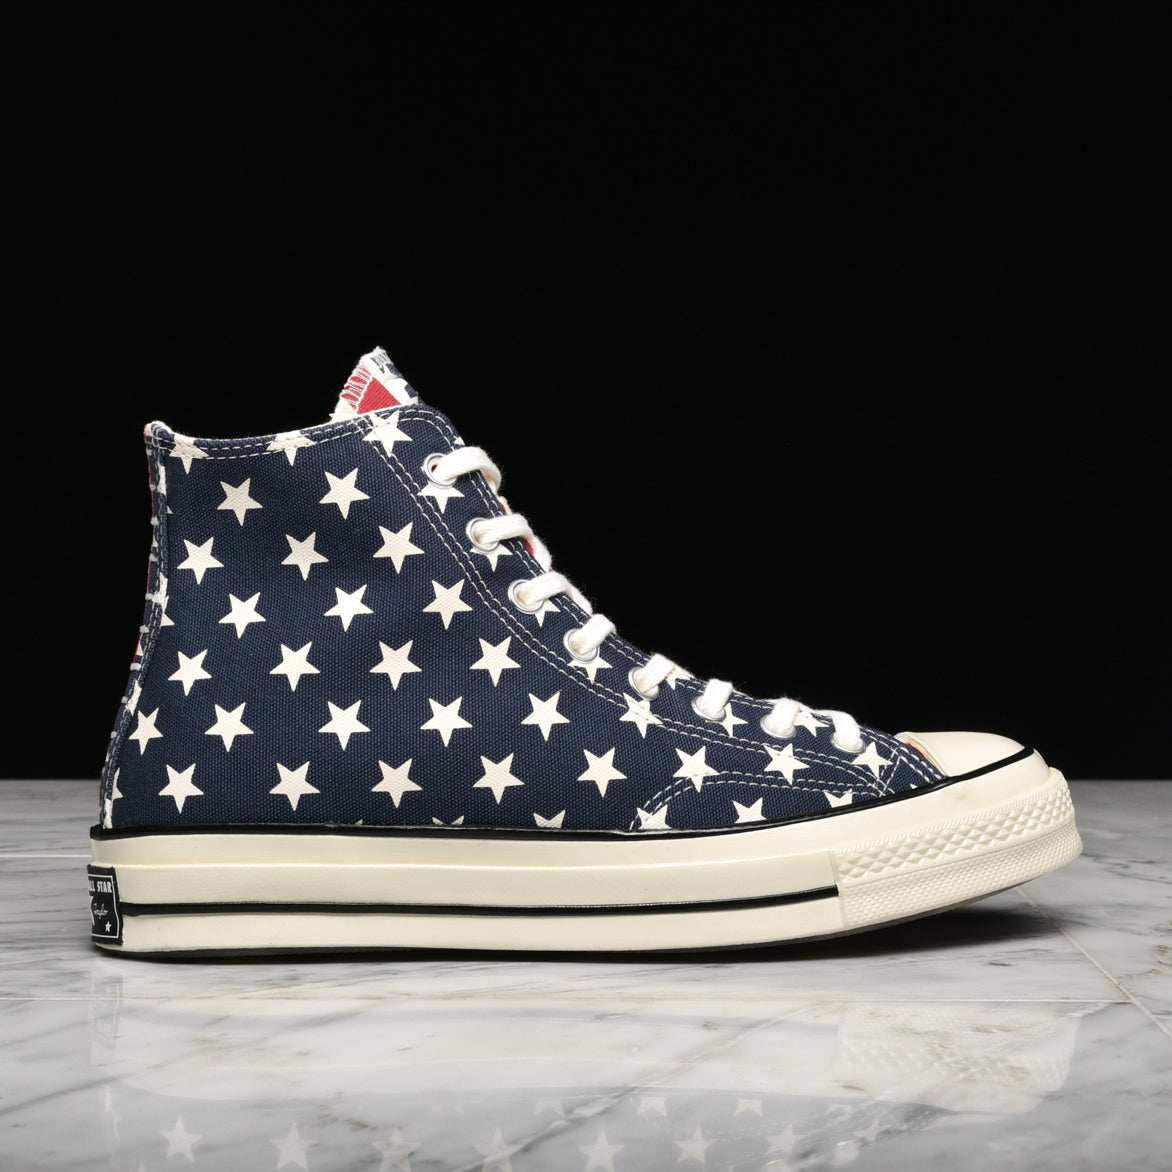 "CHUCK 70 HIGH RESTRUCTURED ""AMERICANA"" - RED / WHITE / NAVY"